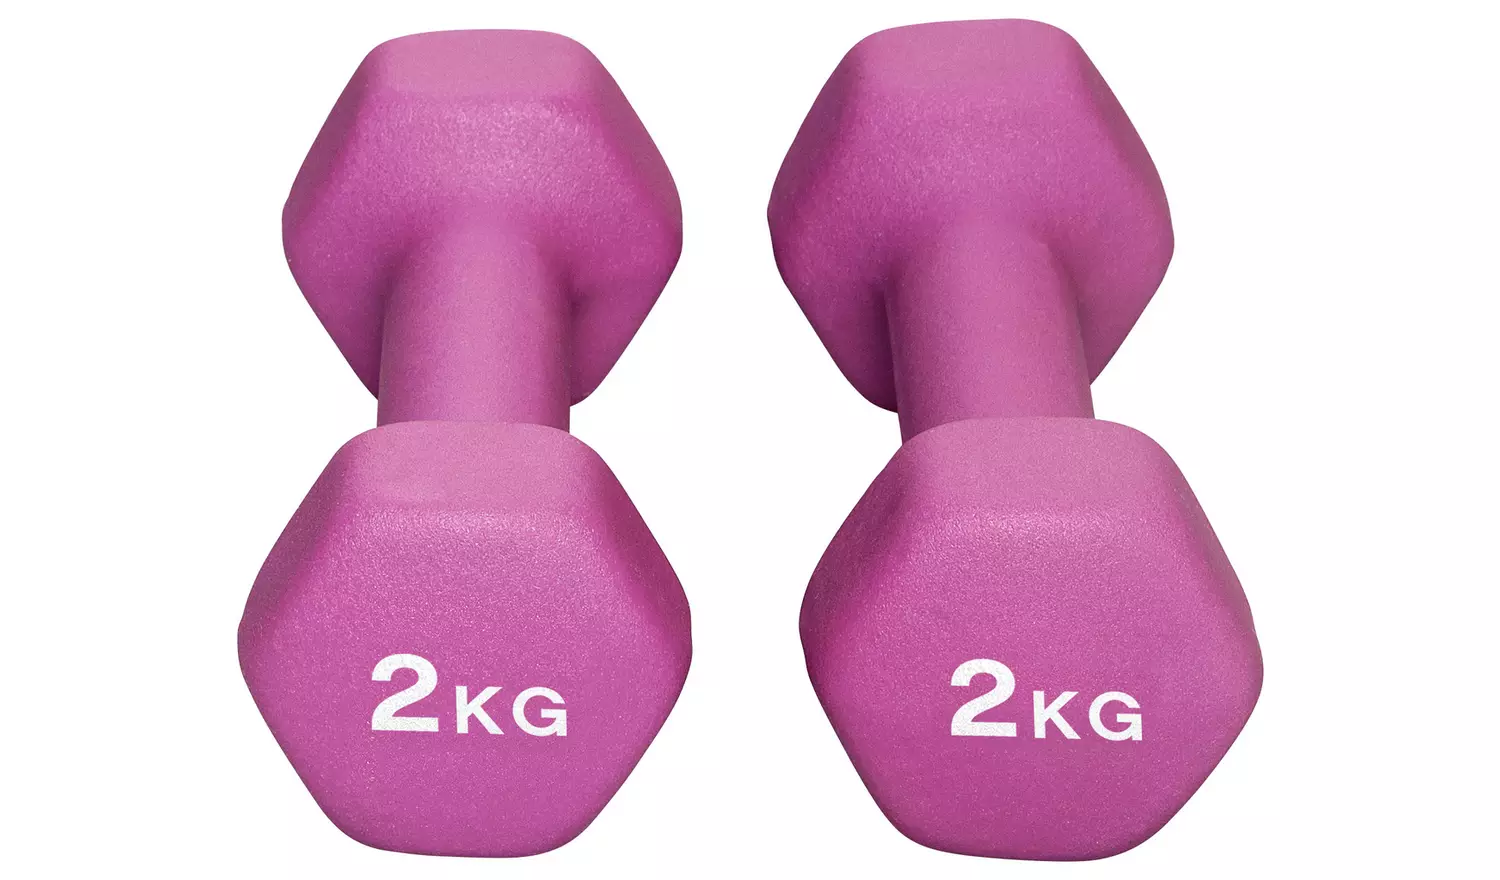 Women's Health Neoprene Dumbbell Set - 2 x 2kg